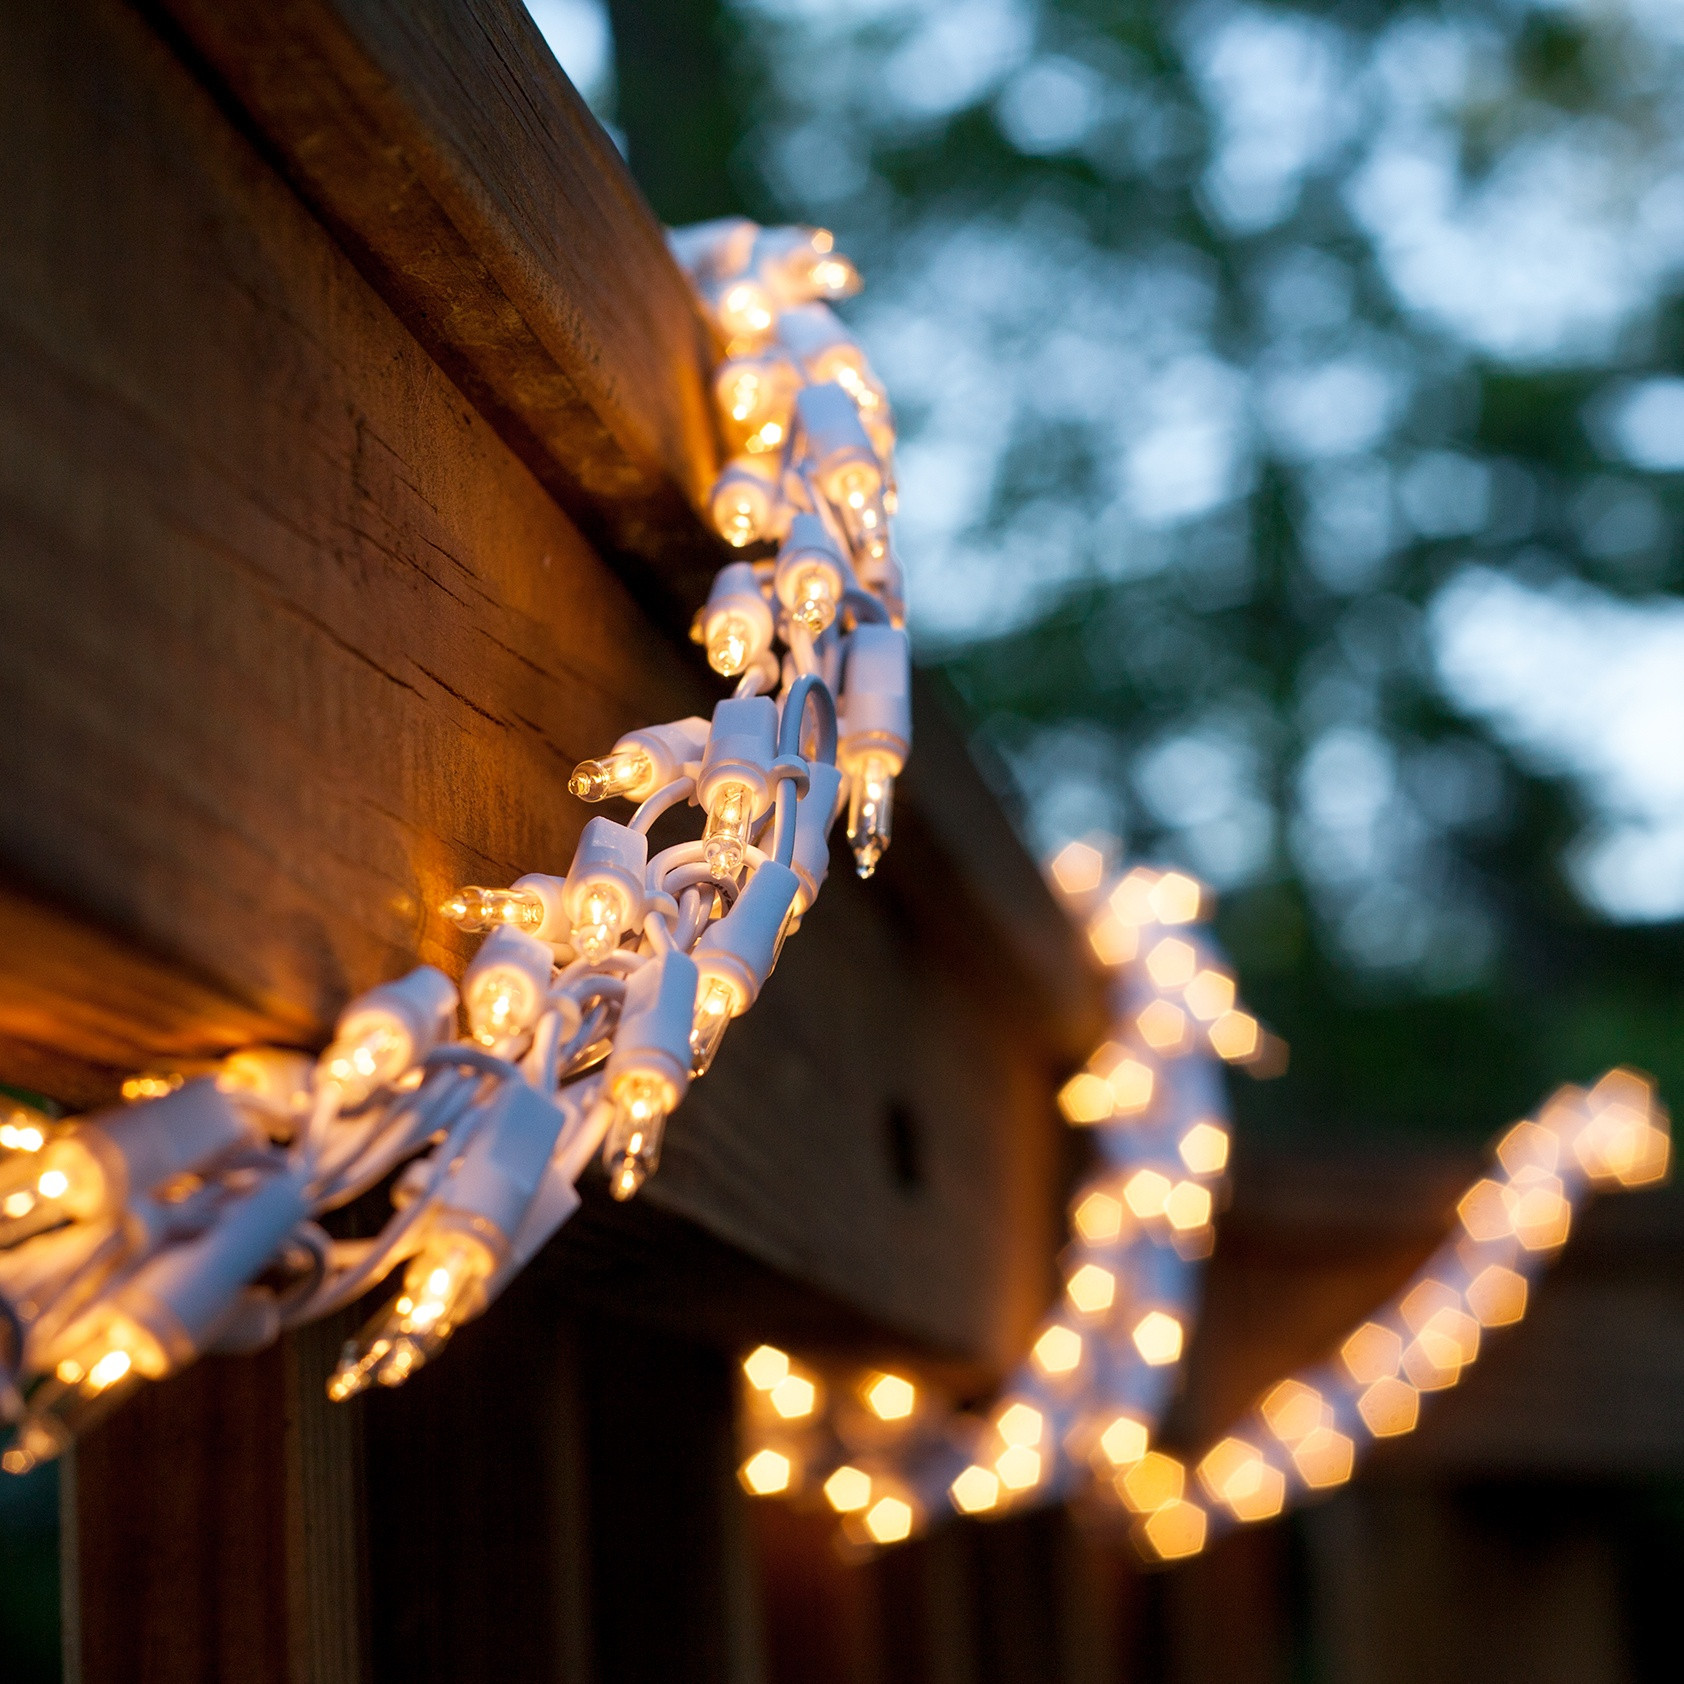 Outdoor Christmas Garland With Lights  Garland Lights 18 Garland Lights 600 Clear Lamps